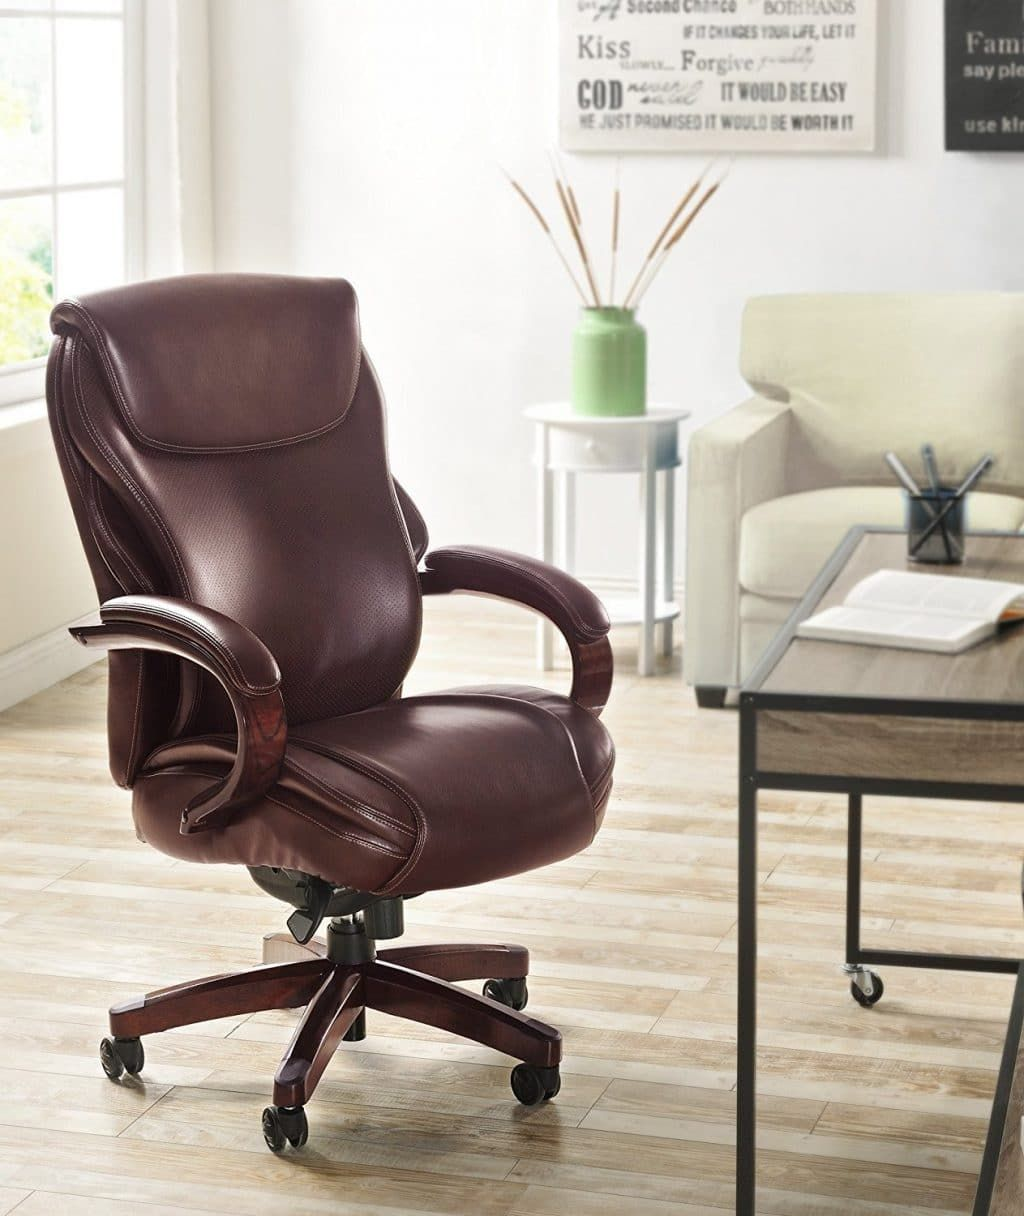 What Is The Best Gaming Chair Under 200? (Updated for